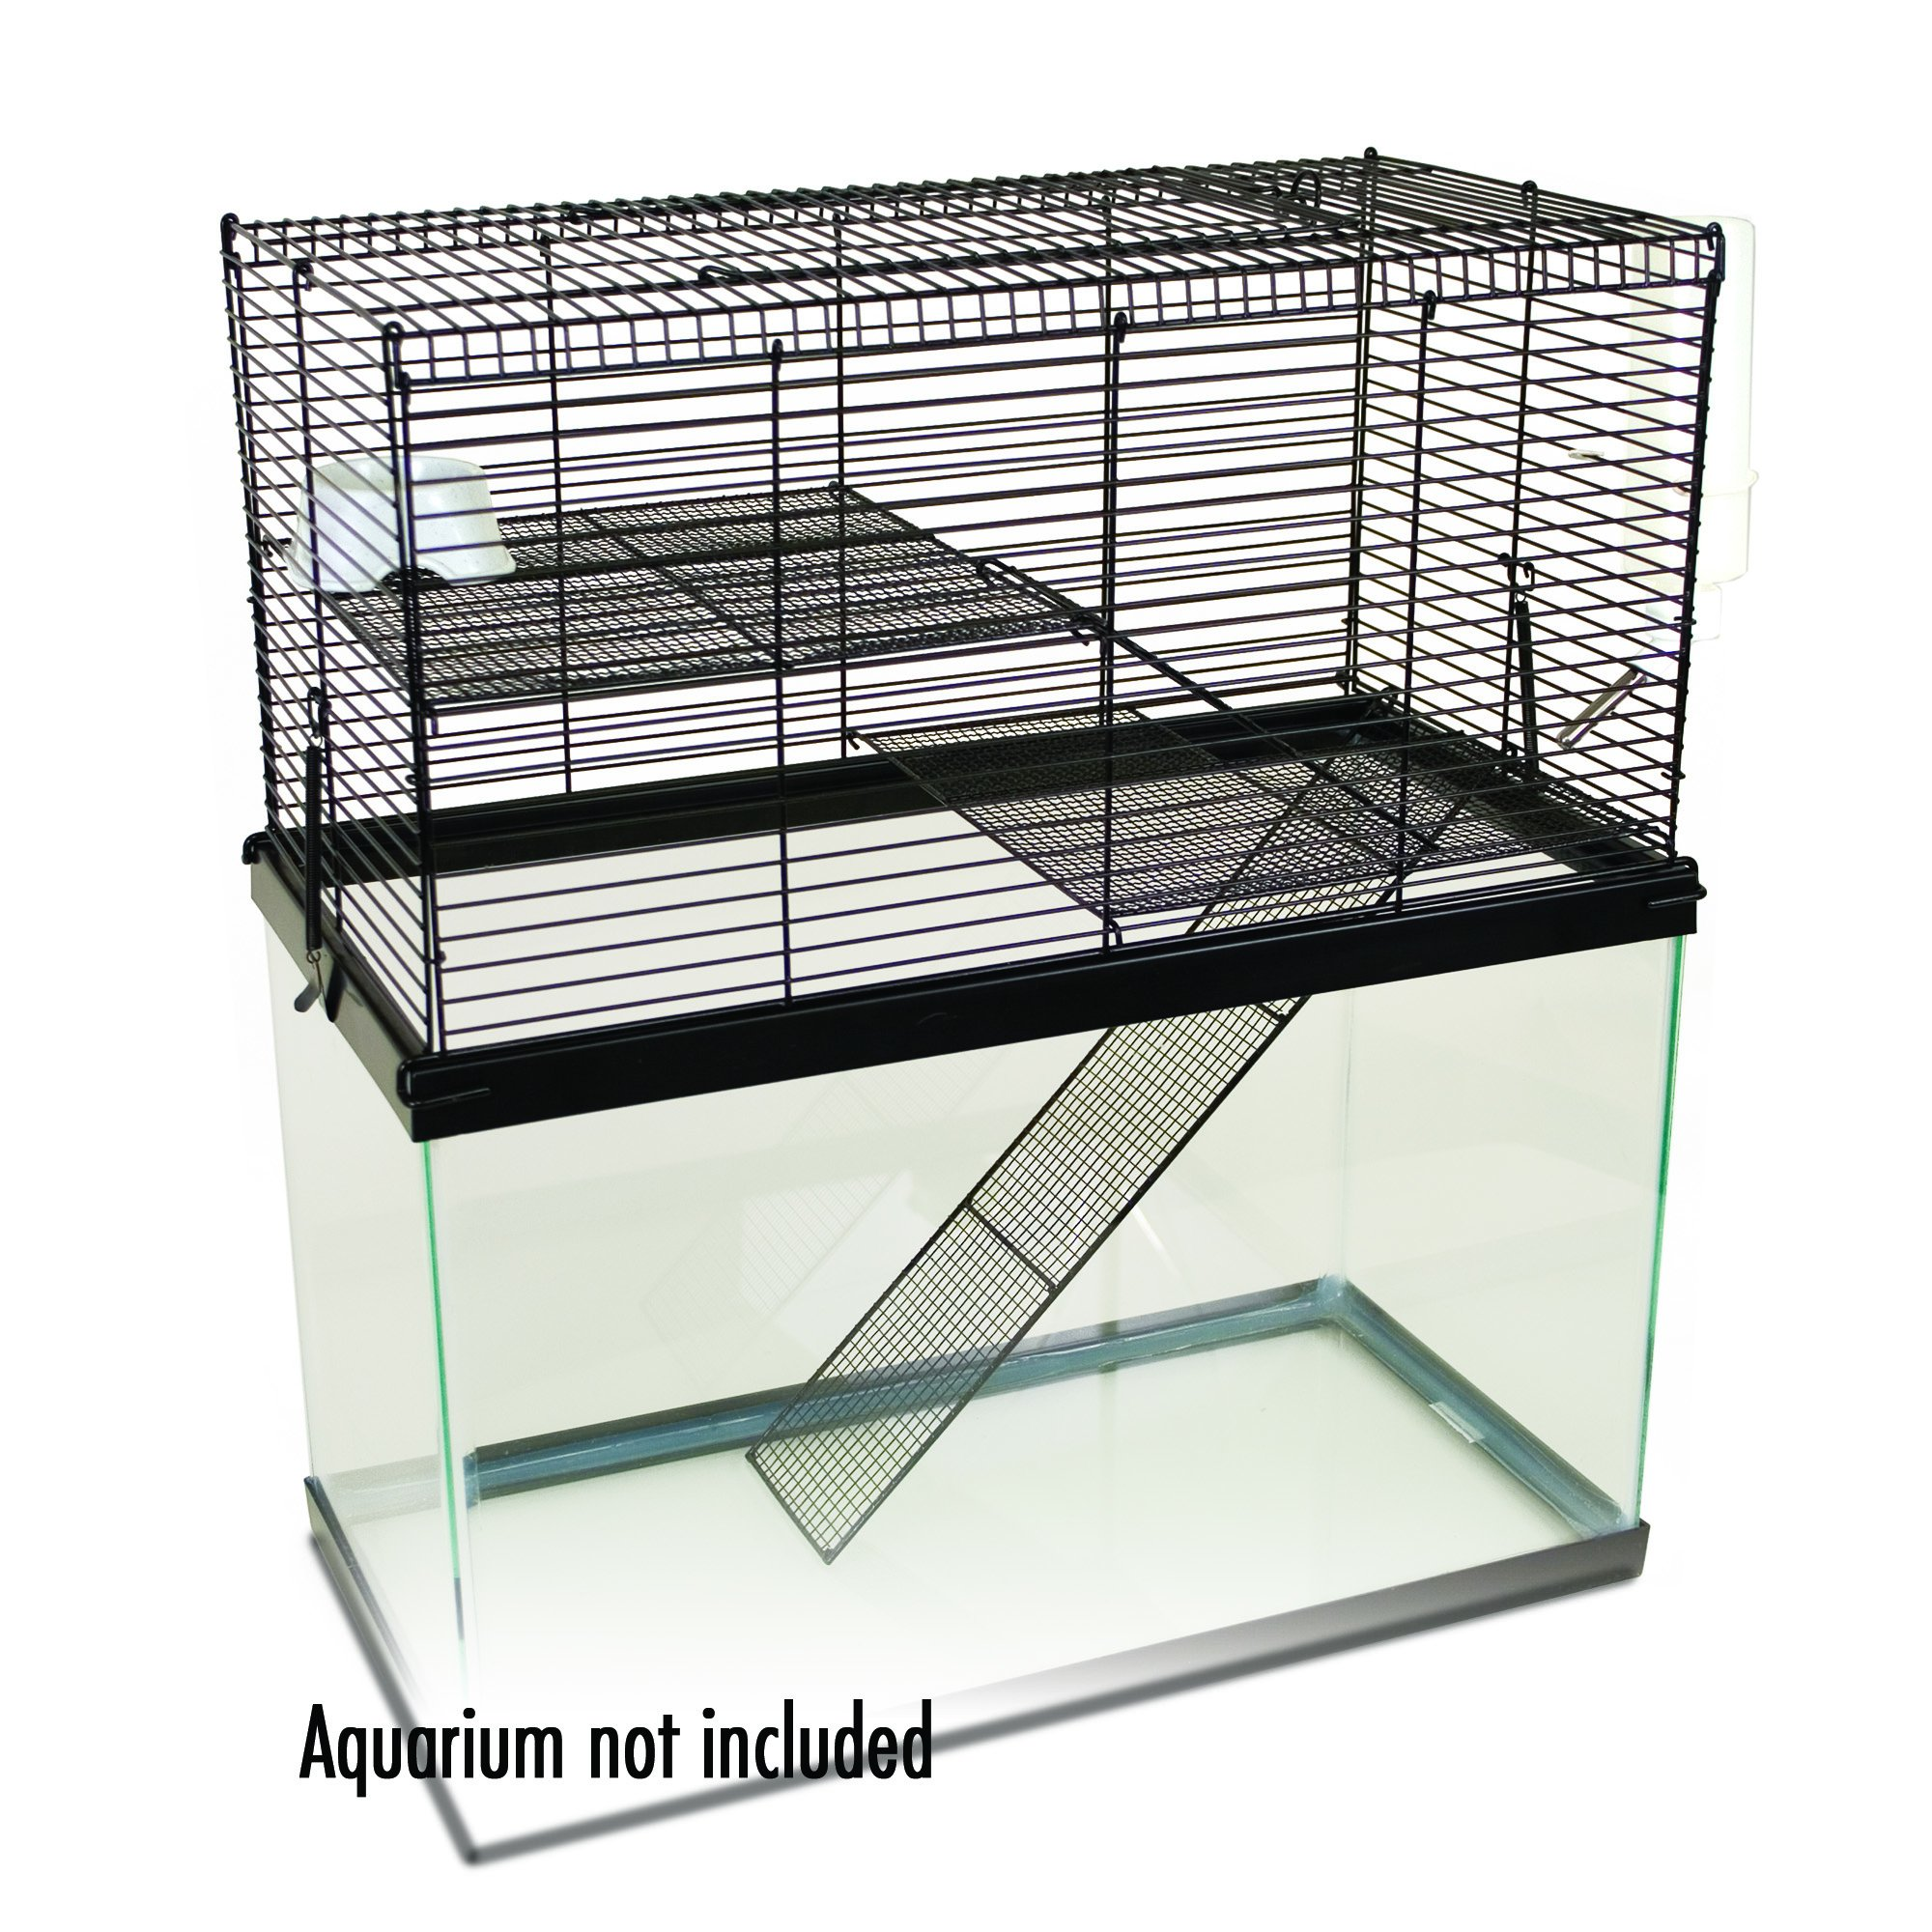 Ware Manufacturing Chew Proof High Rise Pet Cage for Small Pets by Ware Manufacturing (Image #2)